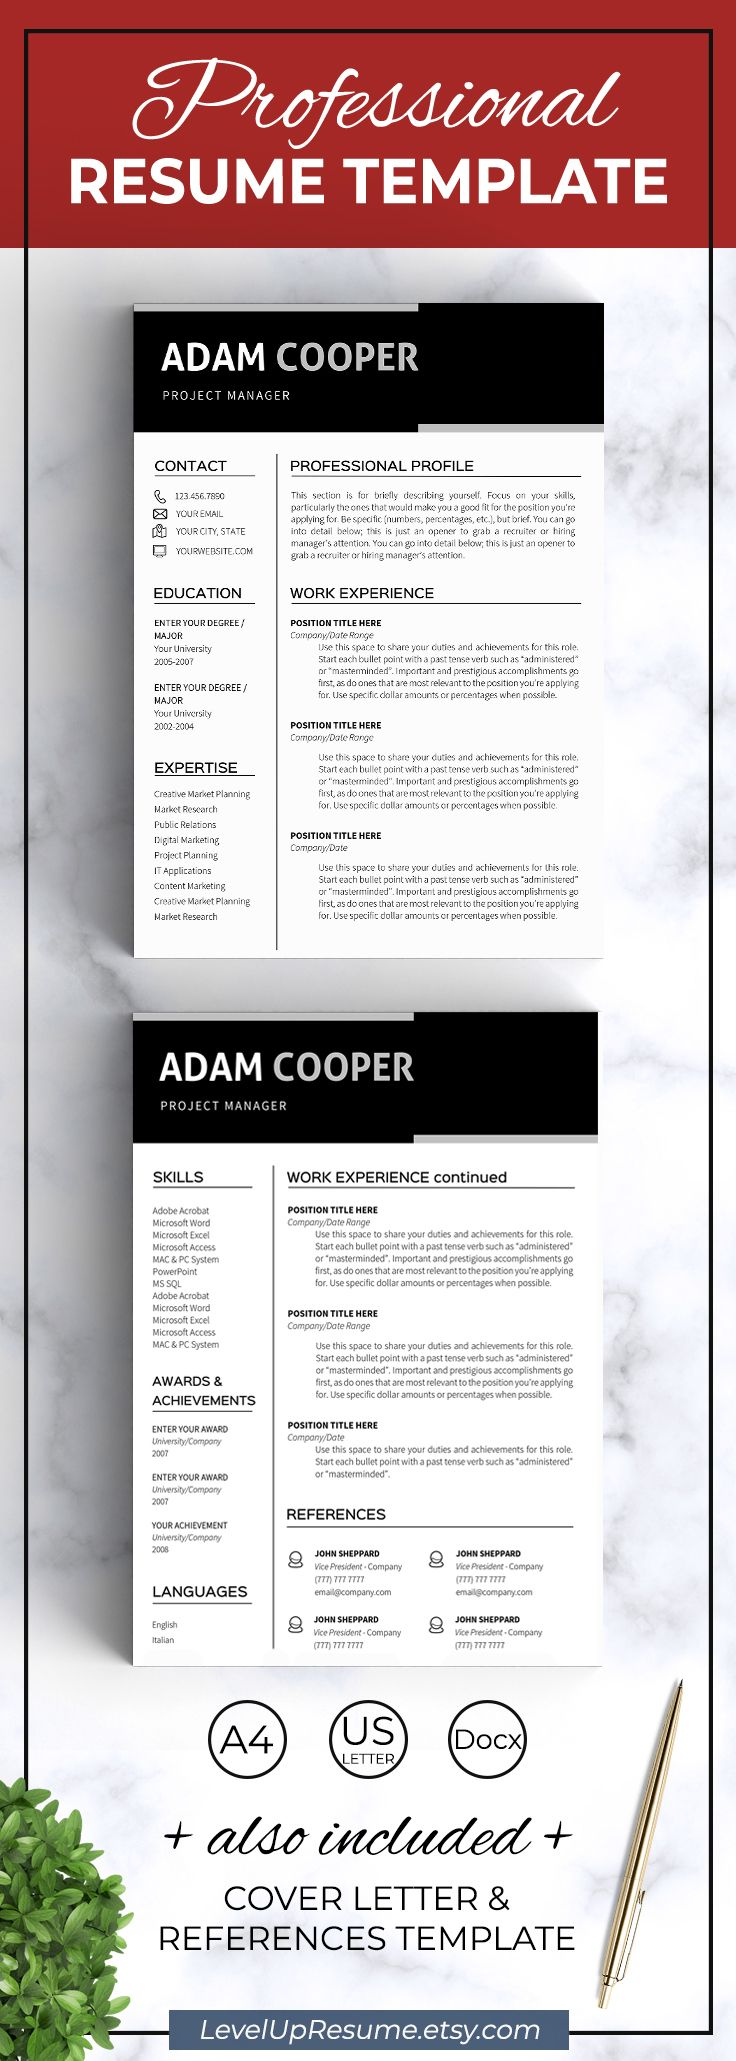 Resume Template Instant Download Clean Resume Templates Professional